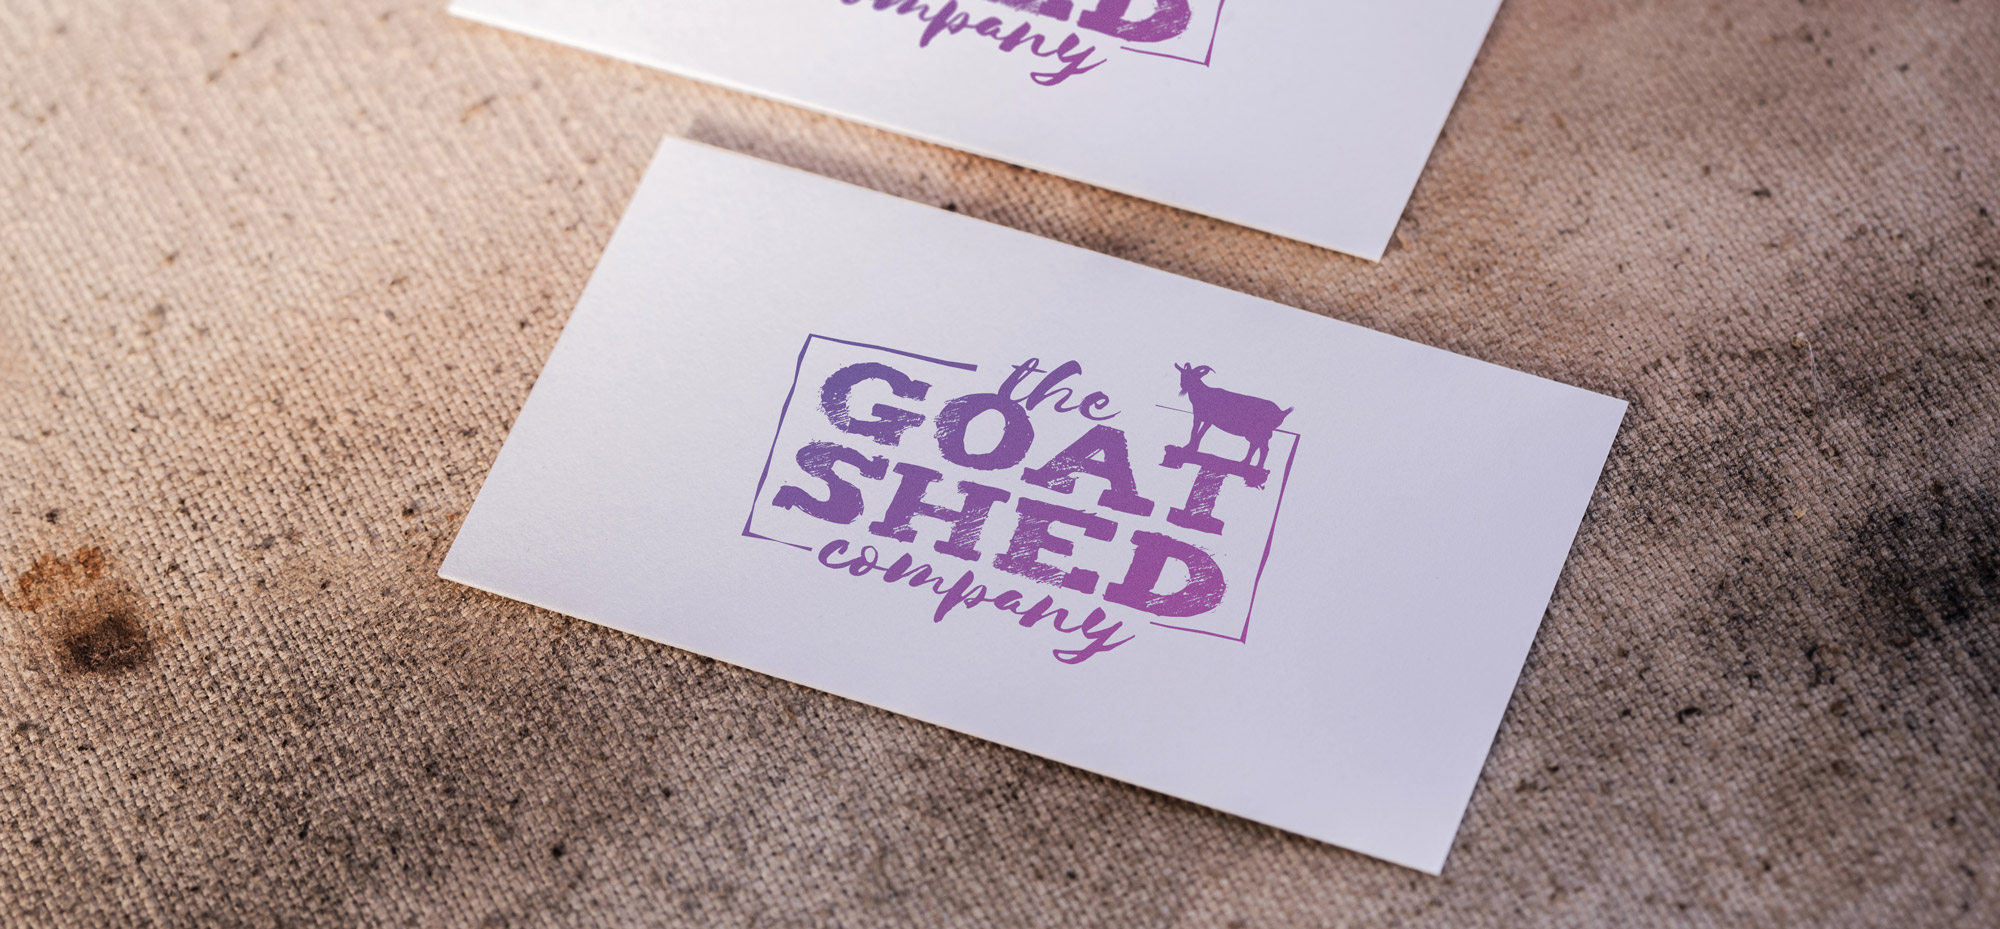 The Goat Shed Company Bespoke Logo Design